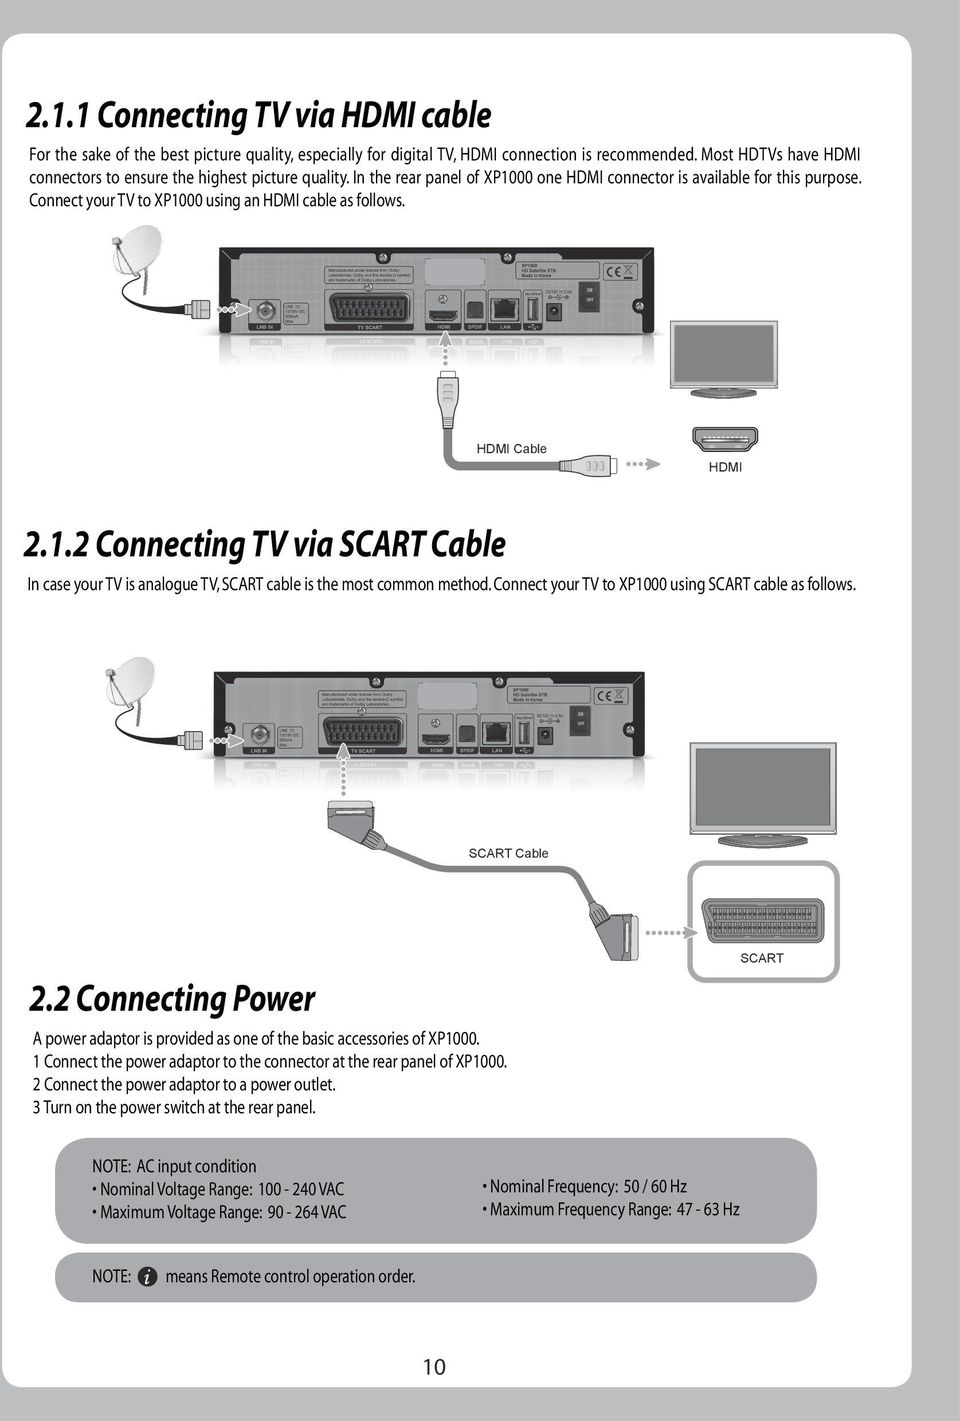 Connect your TV to XP1000 using an HDMI cable as follows. HDMI Cable HDMI 2.1.2 Connecting TV via SCART Cable In case your TV is analogue TV, SCART cable is the most common method.